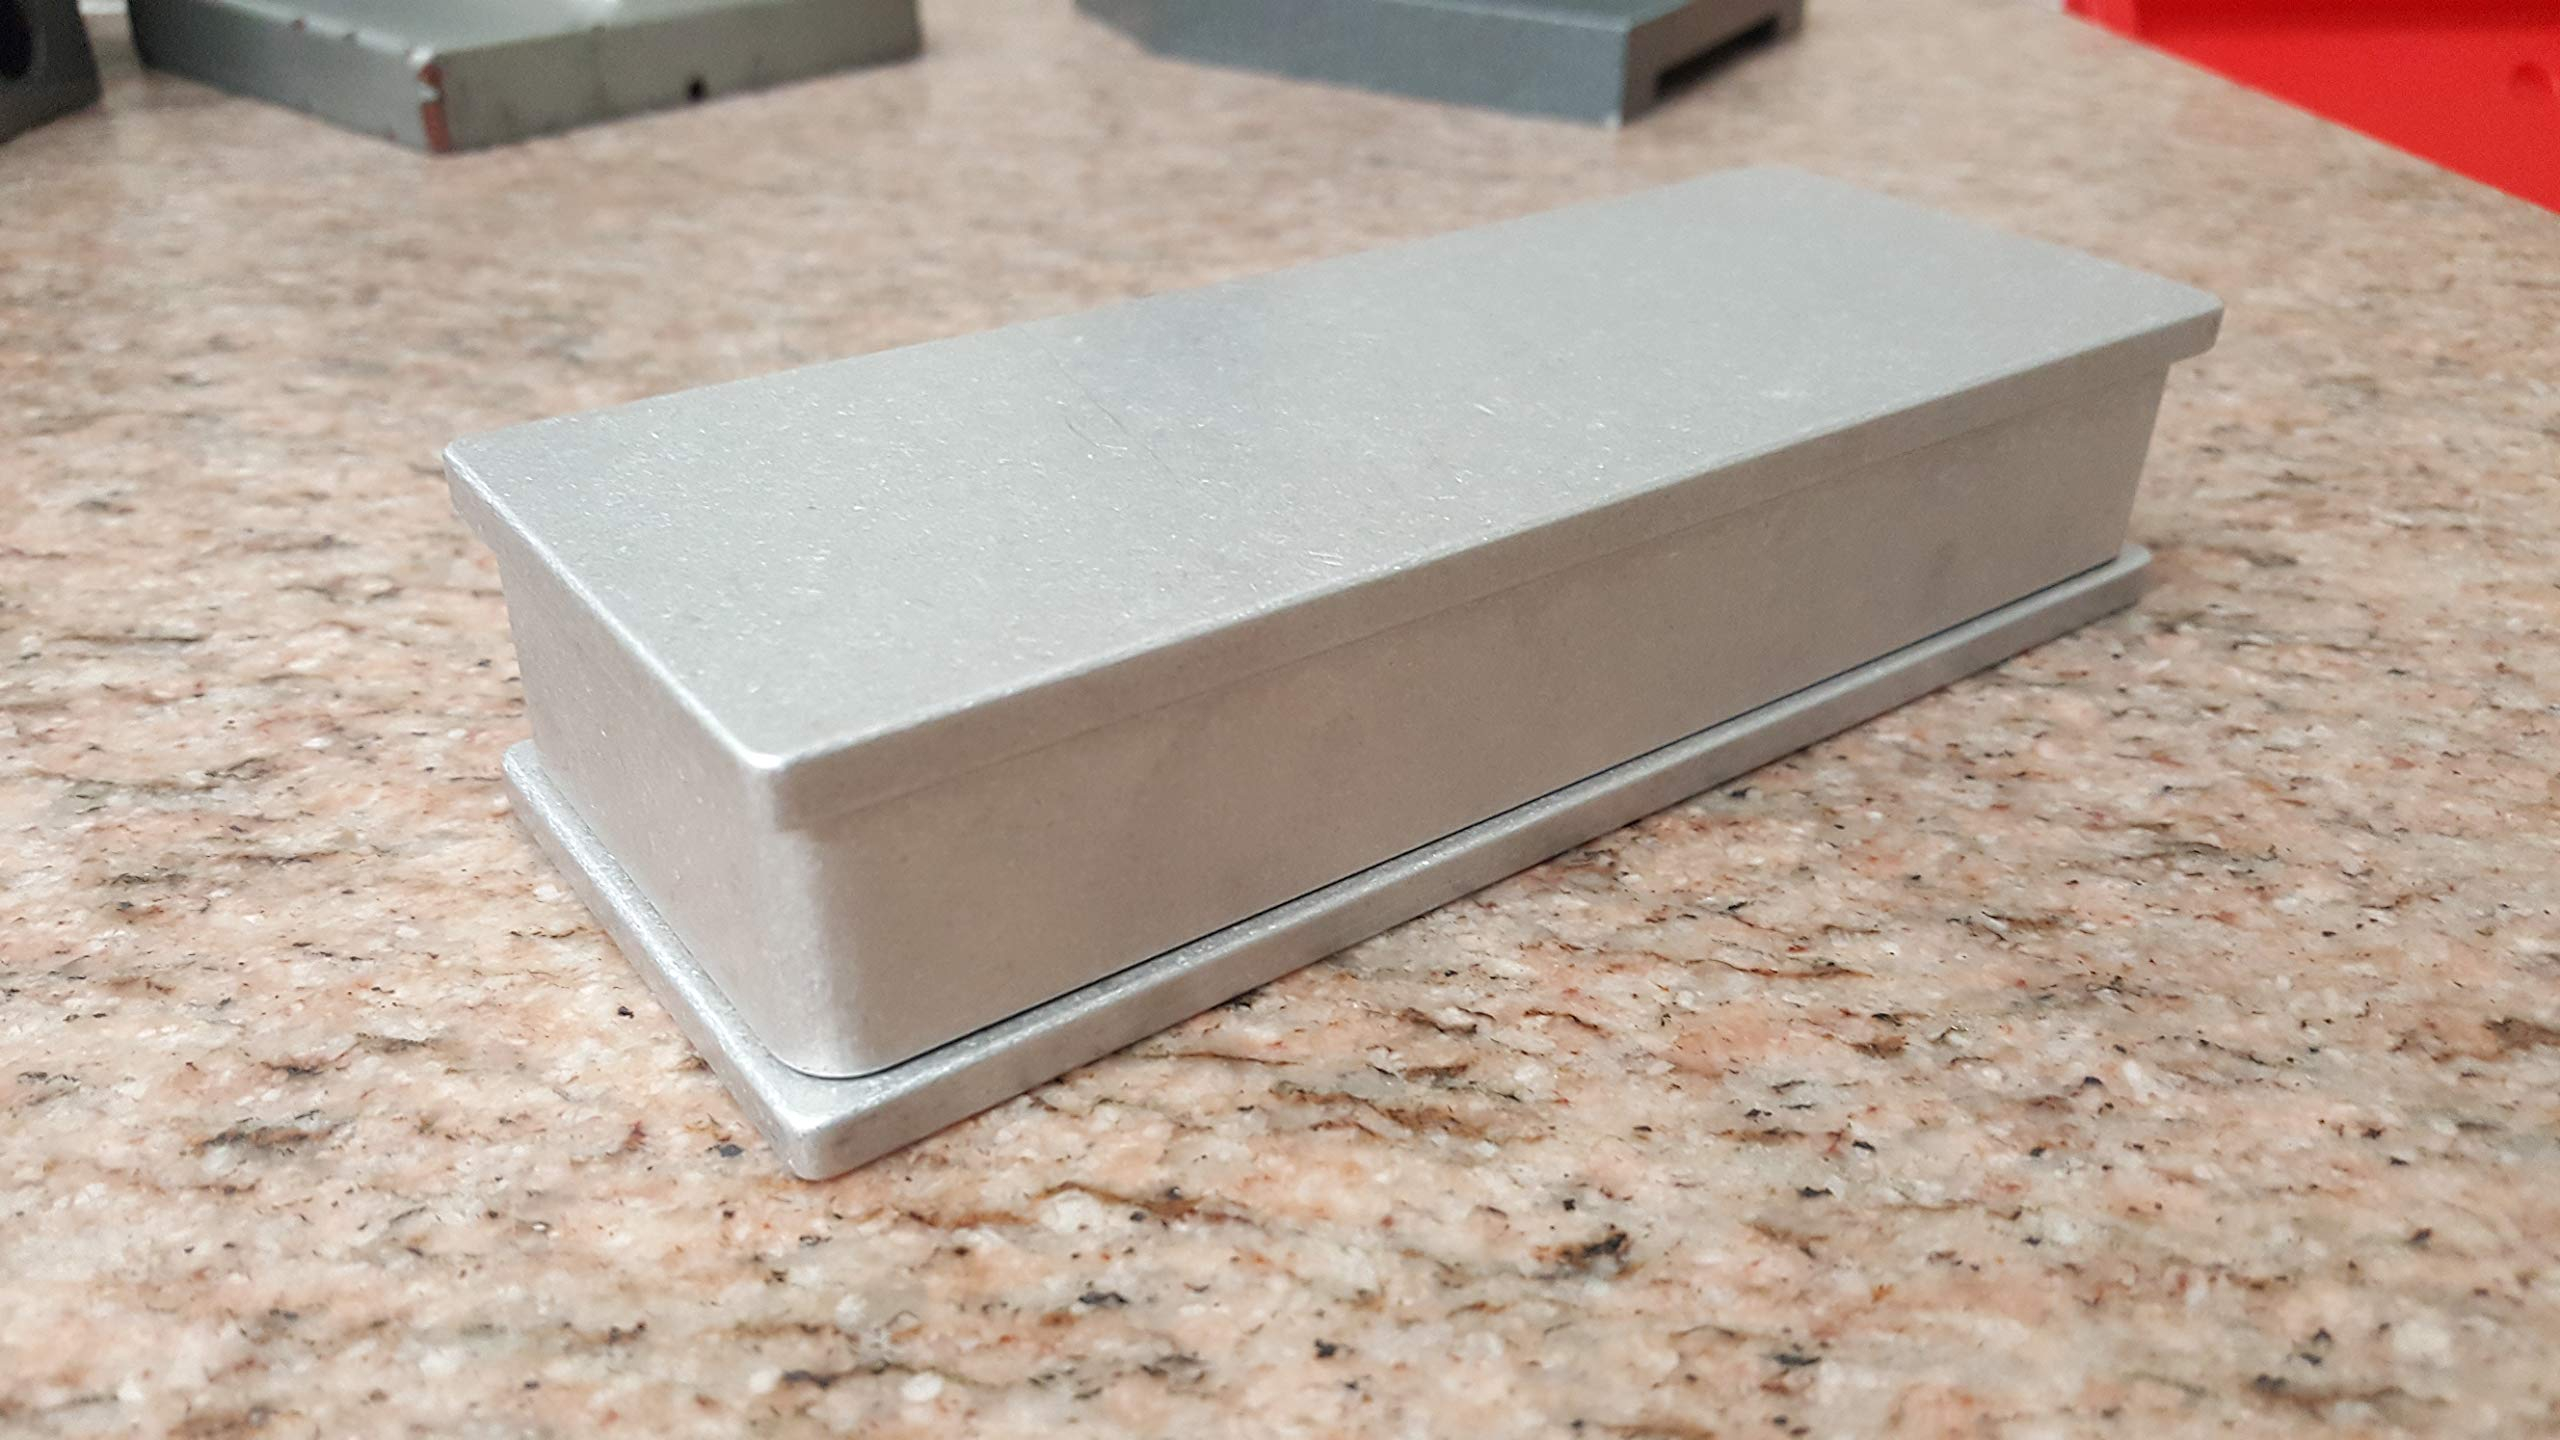 Flower PRE Press Mold 2'' X 6'' 2 X 6 Extraction Billet Aluminum USA Made by BTM MANUFACTURING (Image #3)